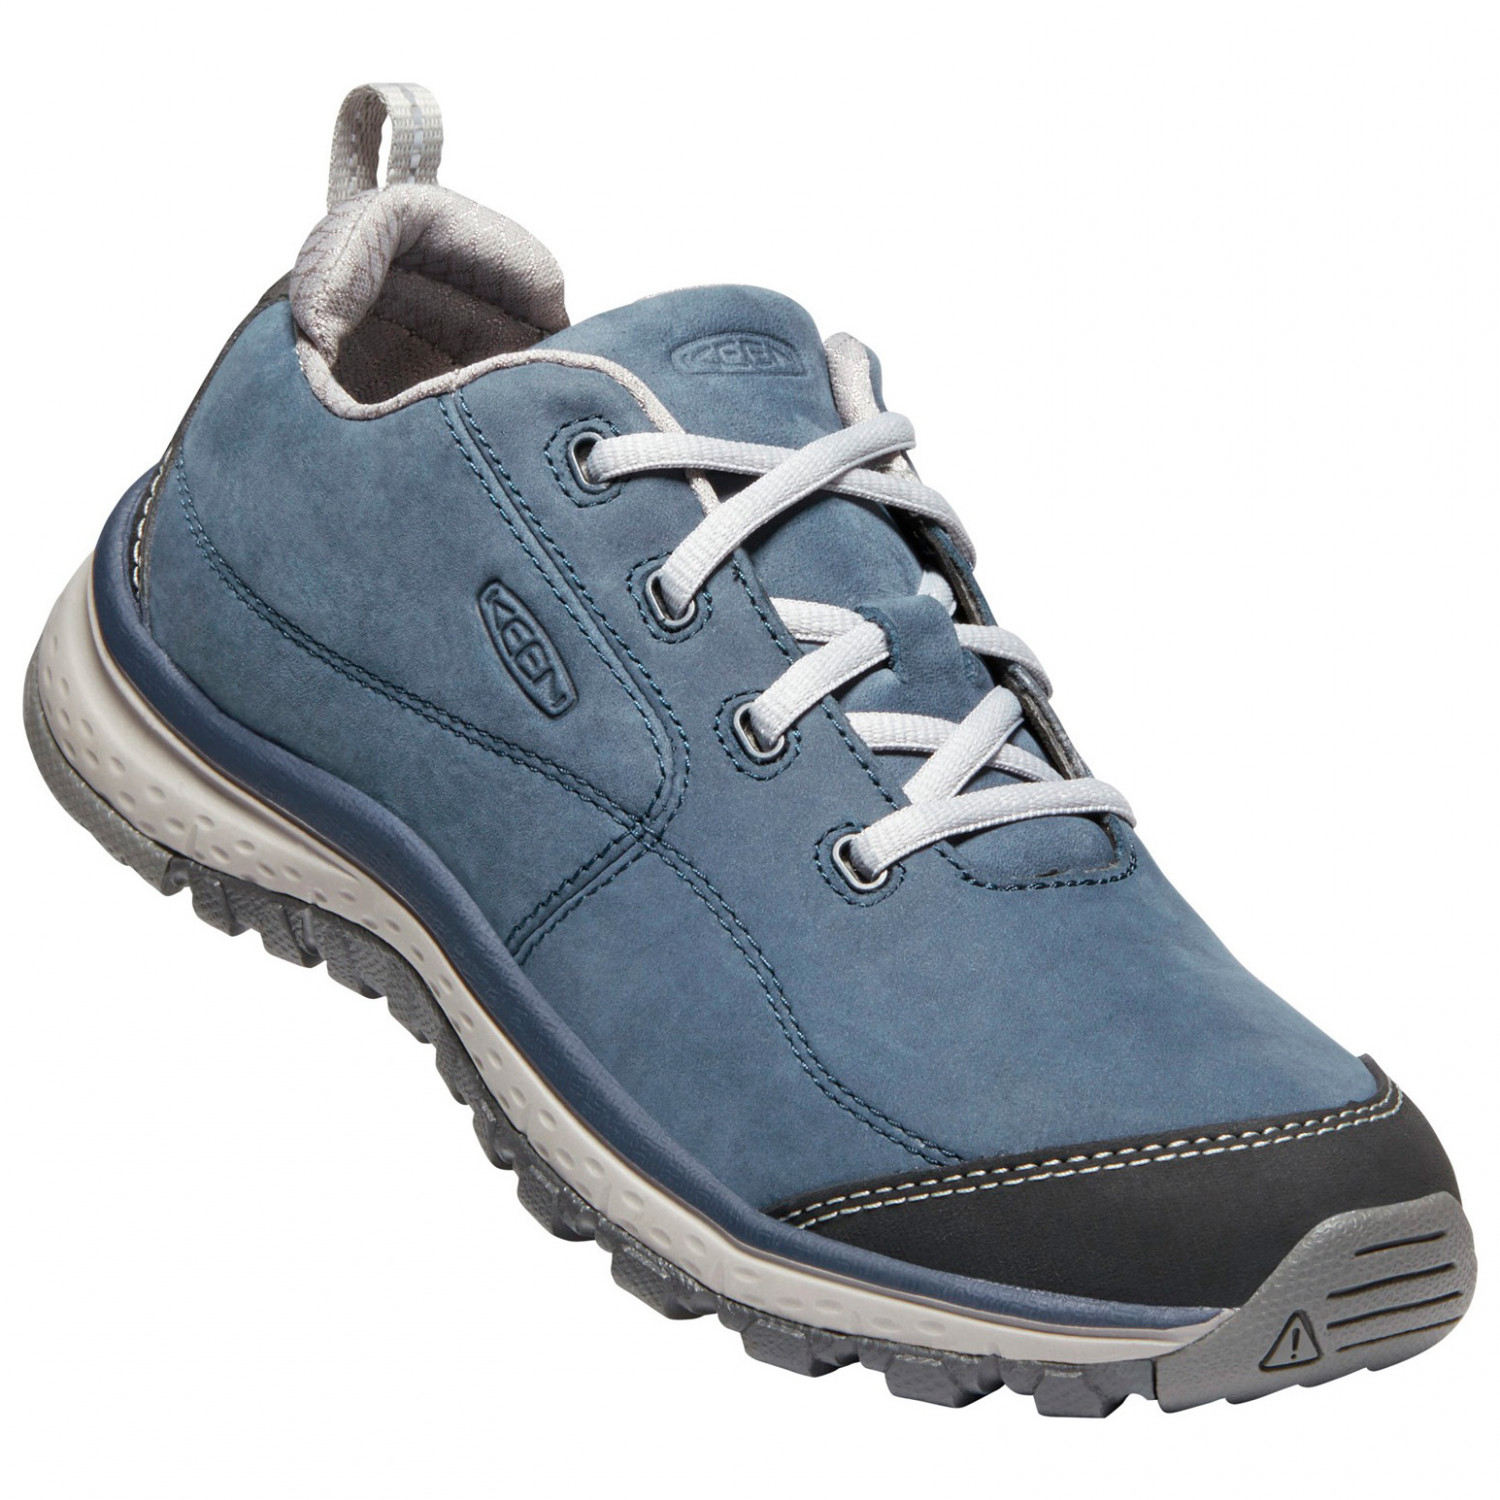 Keen Womens Terradora Leather Walking Shoes Blue Sports Outdoors Breathable